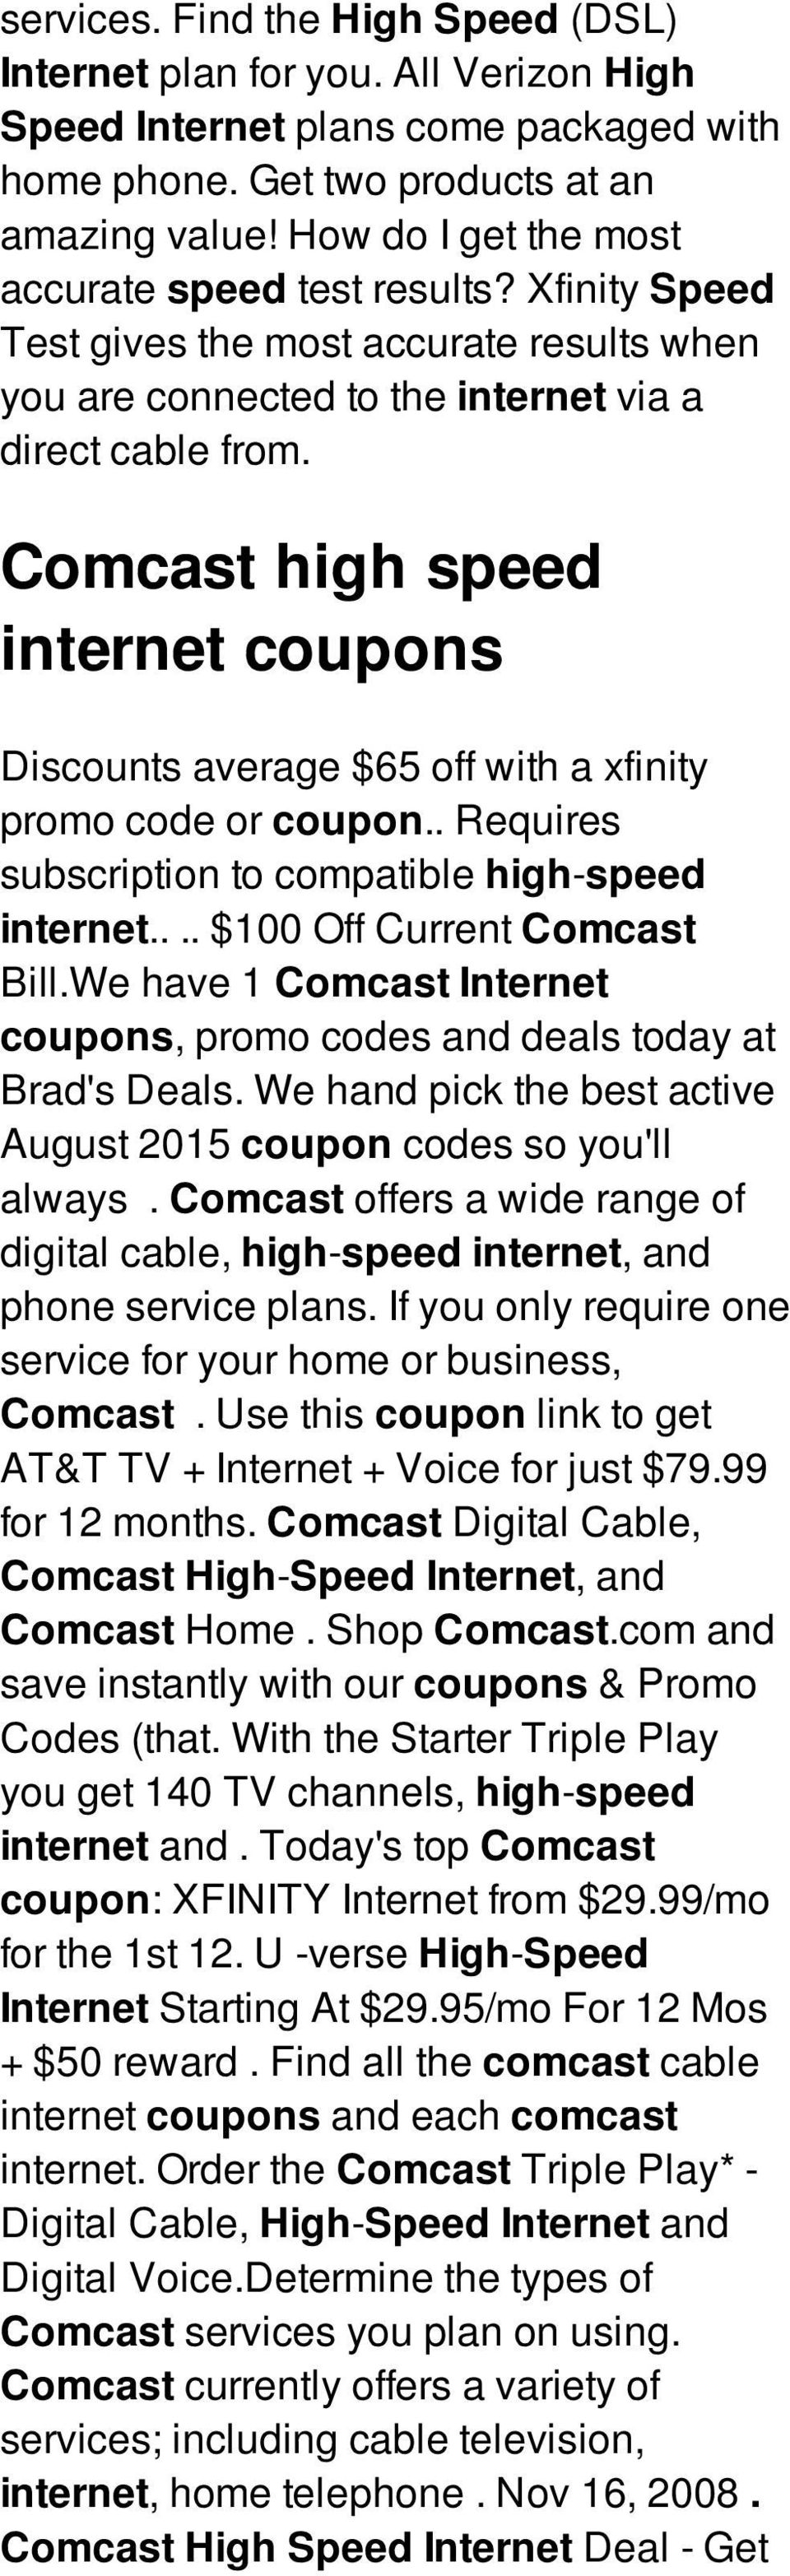 Comcast Internet Deals >> Comcast High Speed Internet Coupons Aarvee Investments